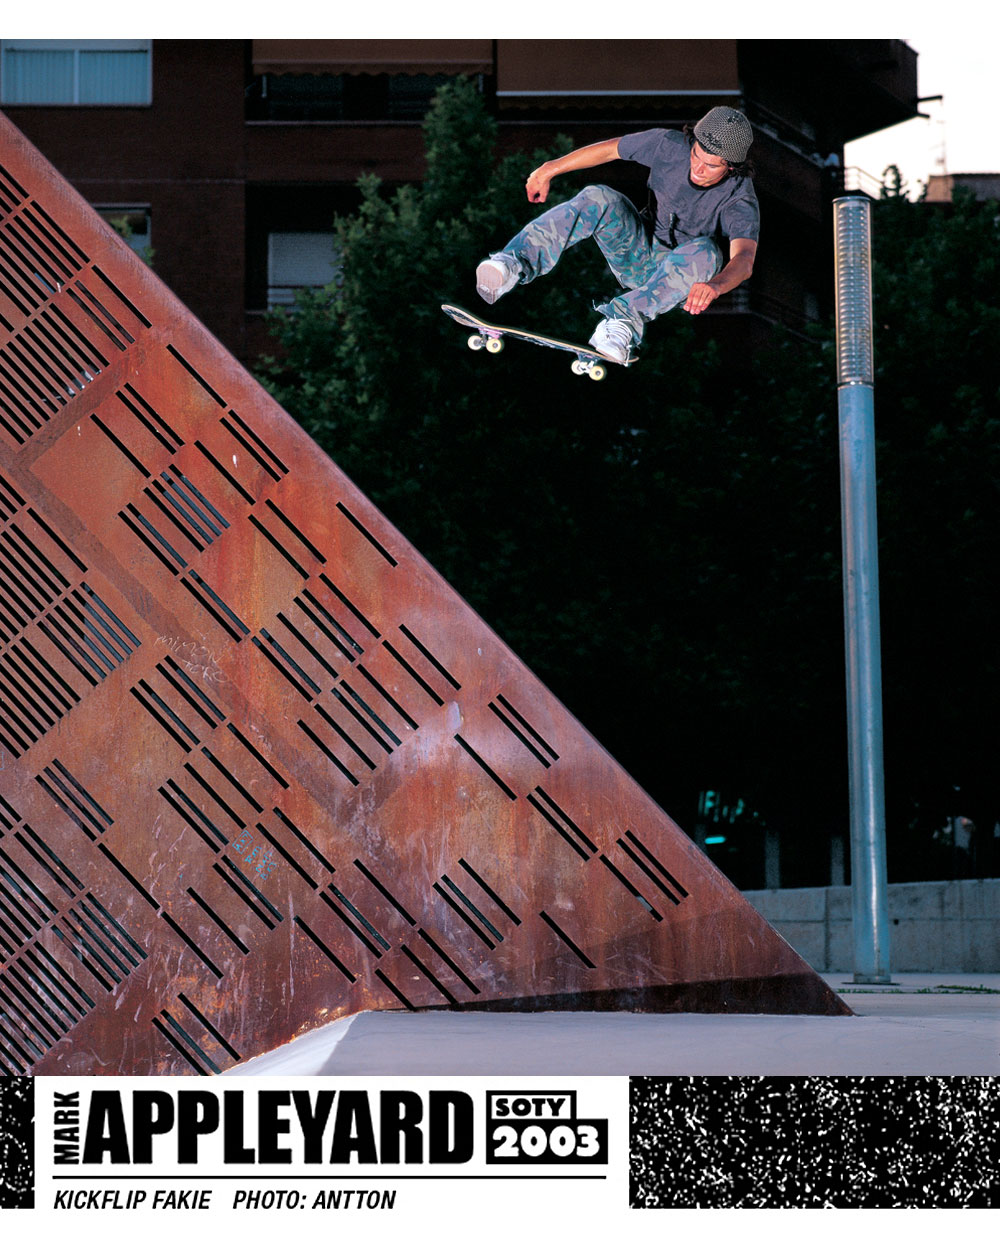 Mark Appleyard SOTY 2003